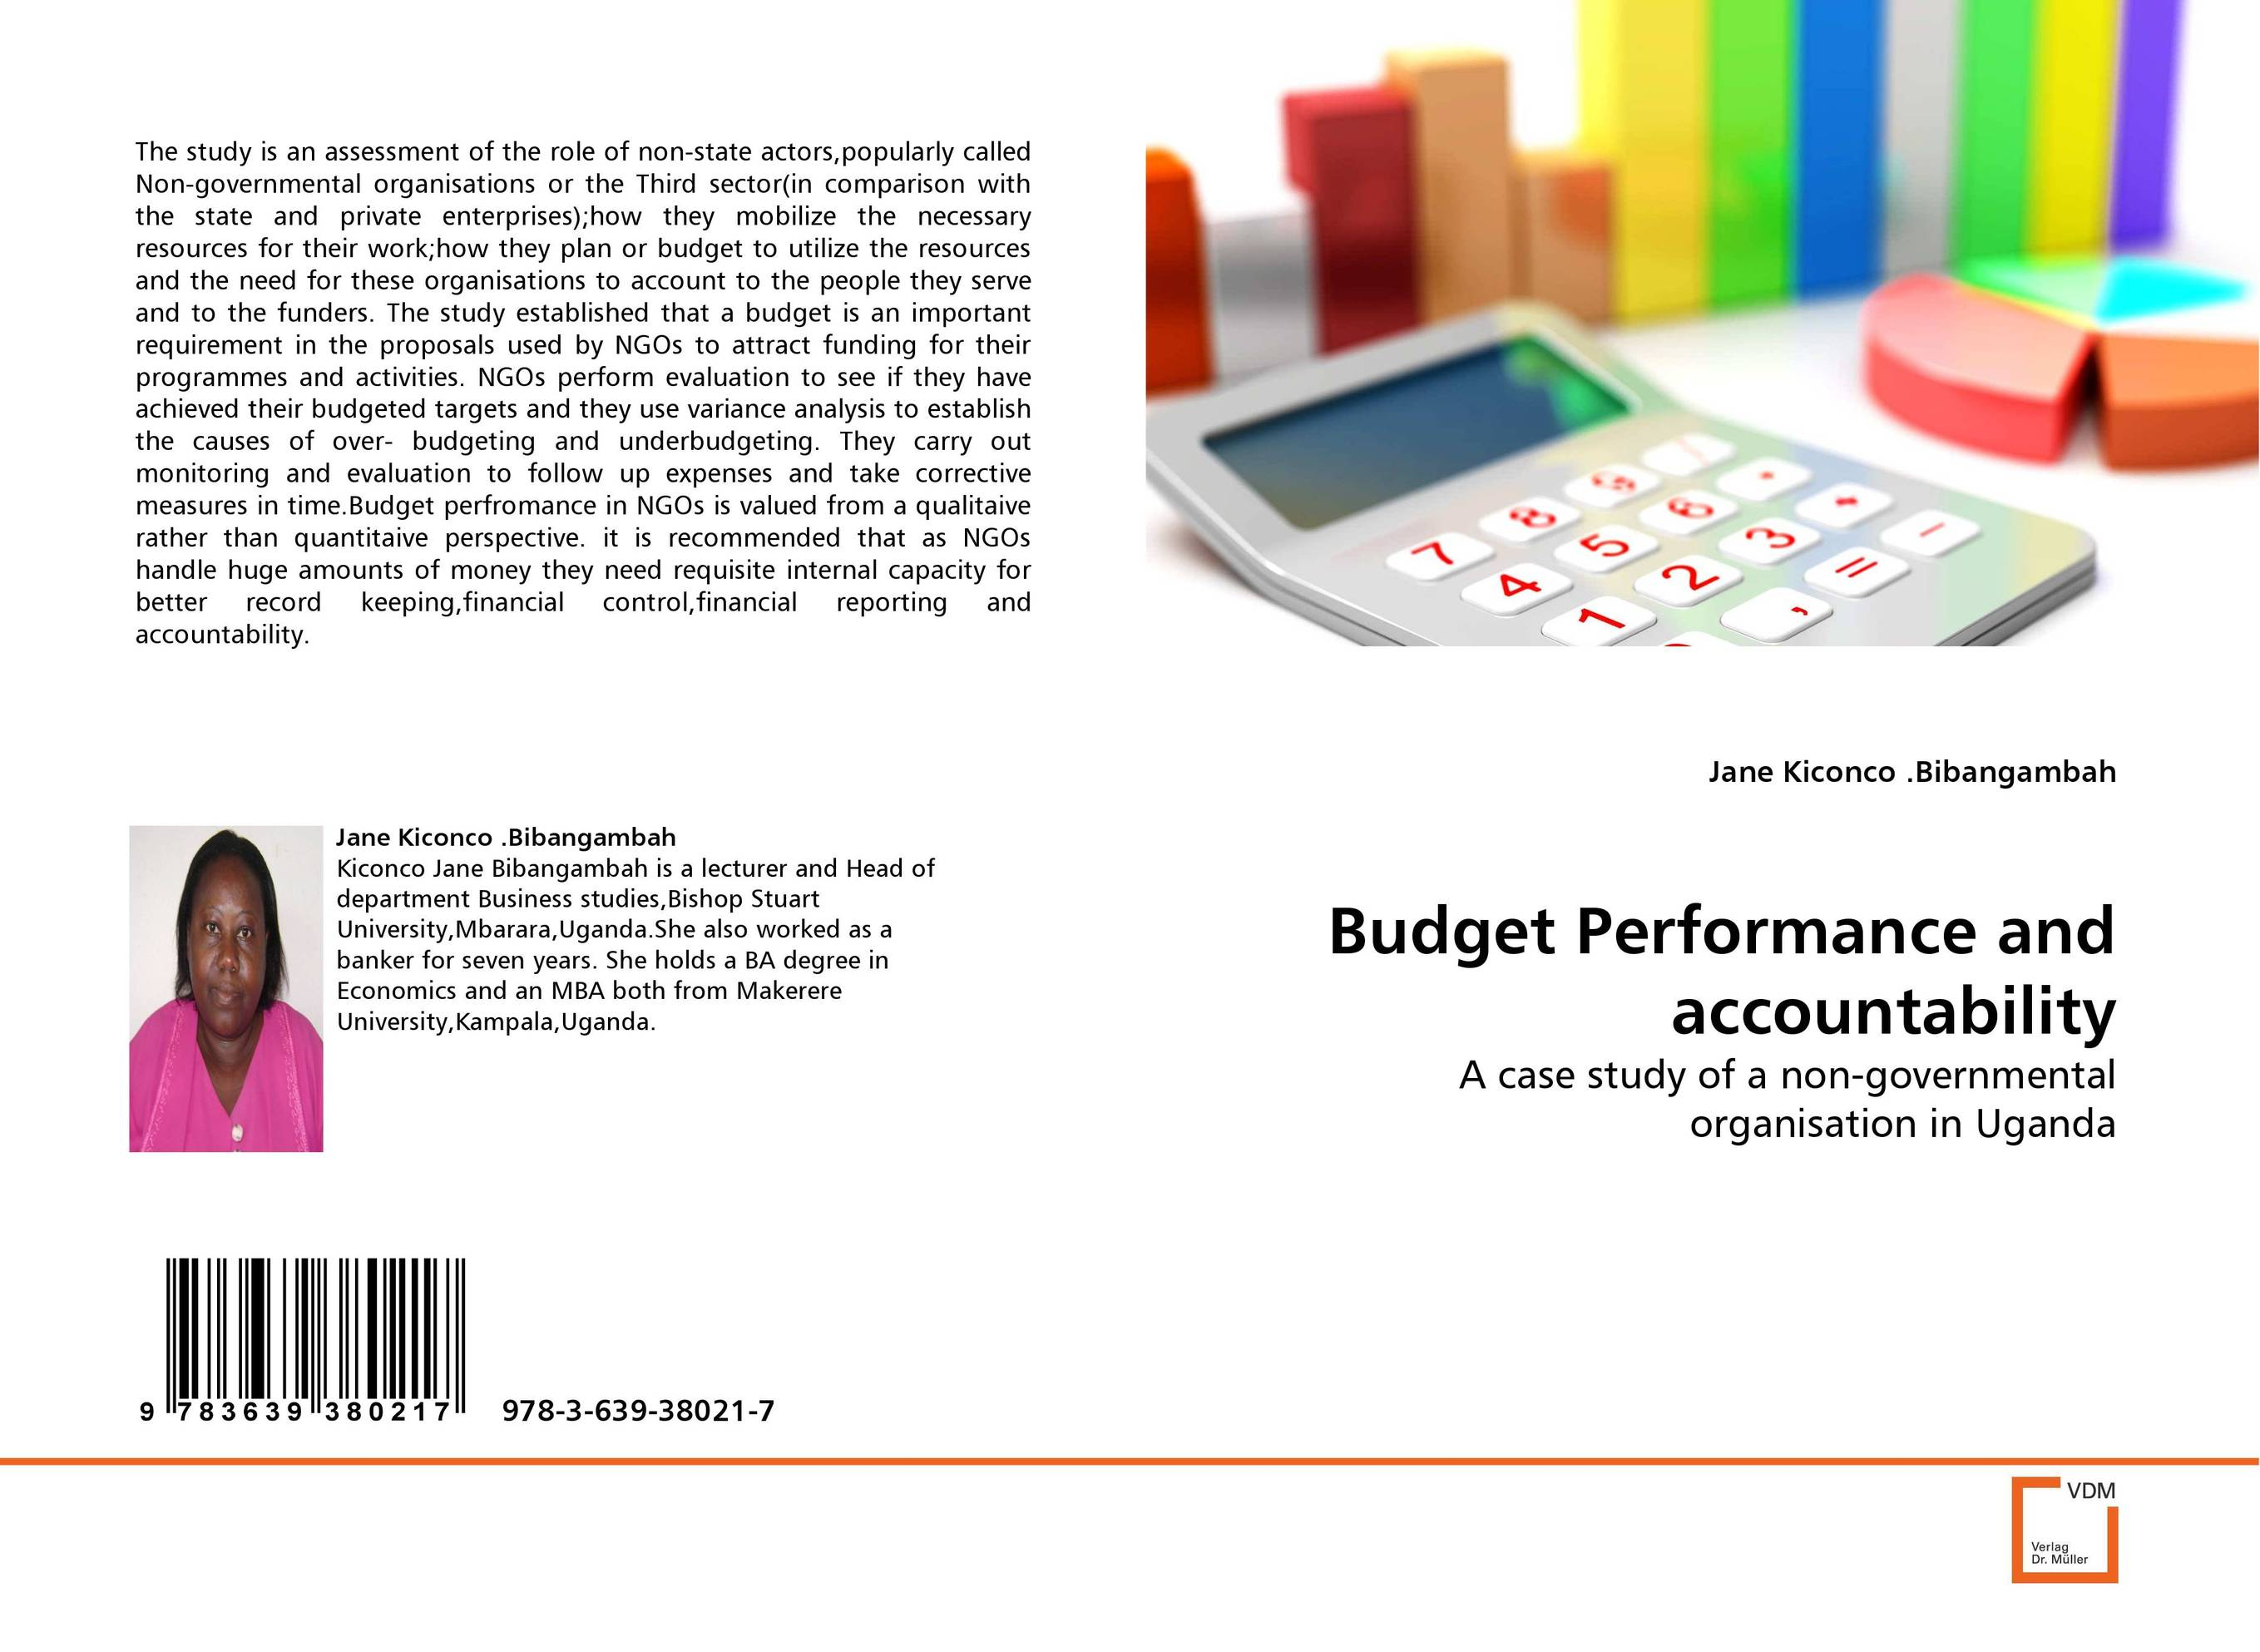 Budget Performance and accountability